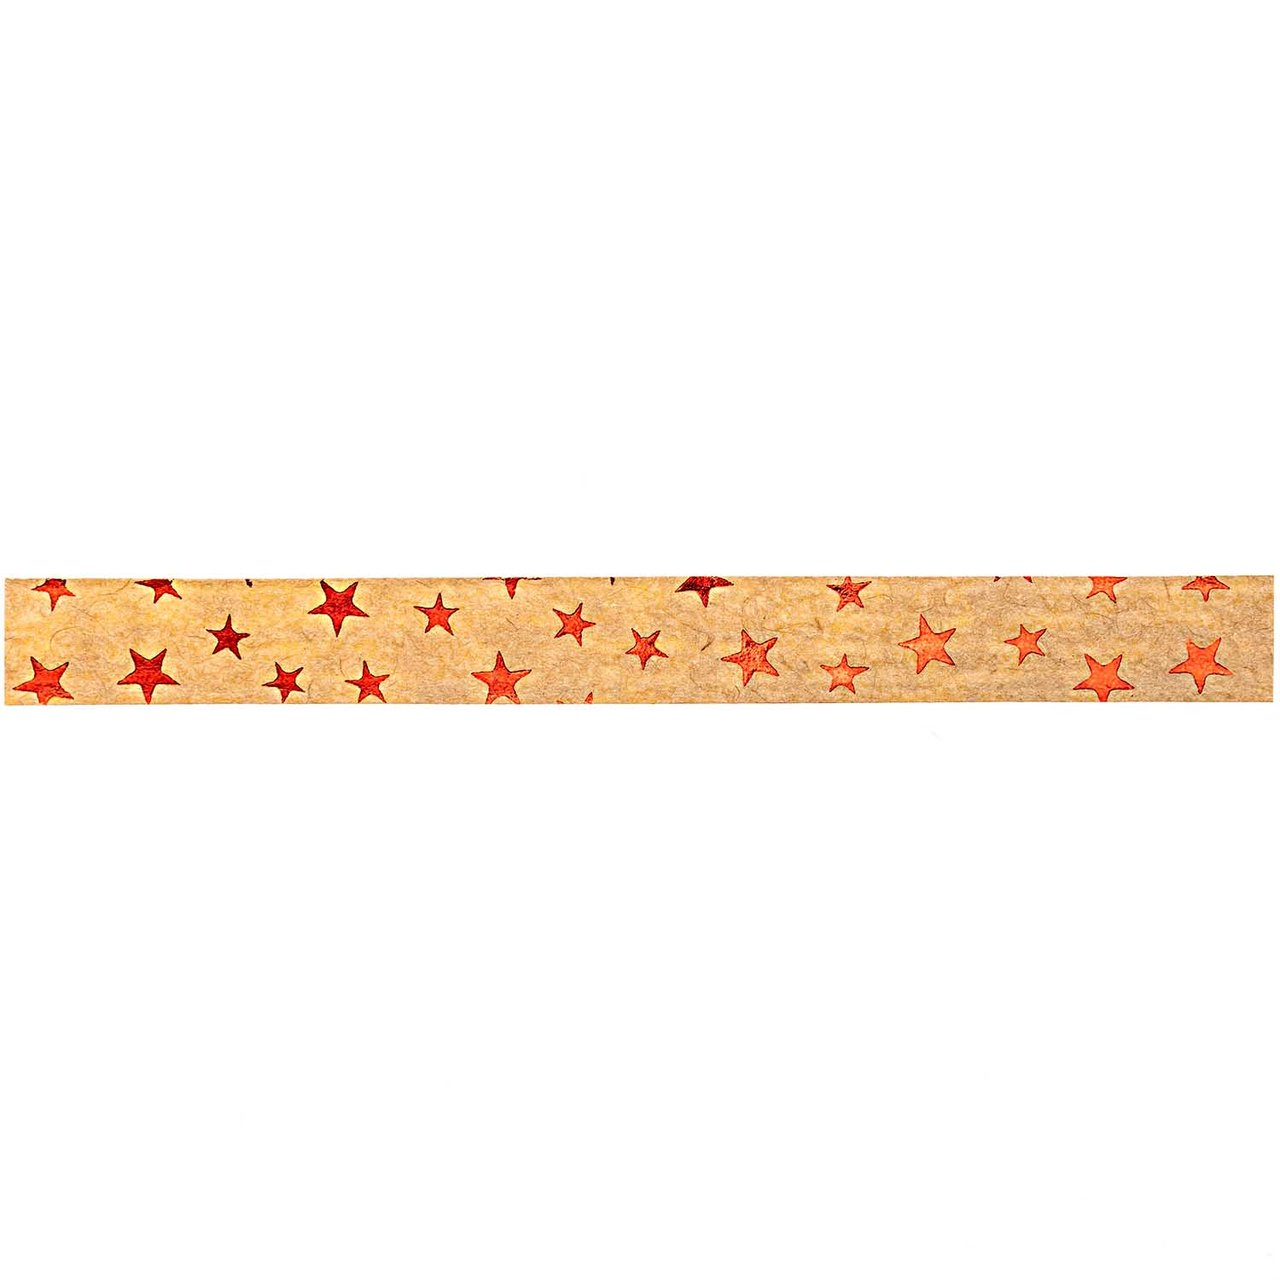 GOLDINA Packpapier-Ringelband hellbraun-rot 10mm 12m Hot Foil von GOLDINA